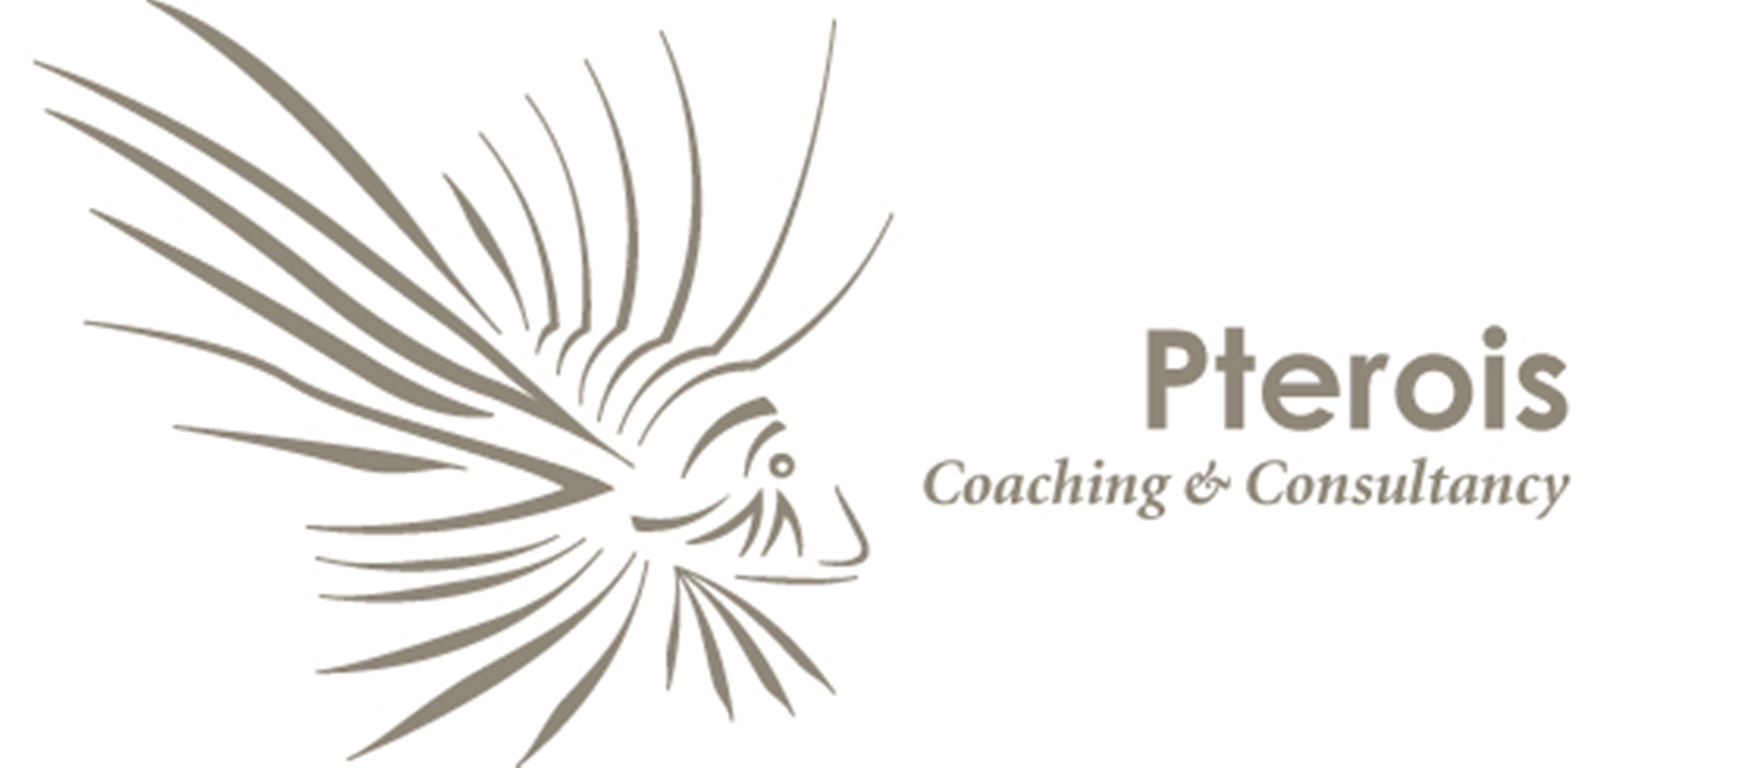 Pterois Coaching & Consultancy